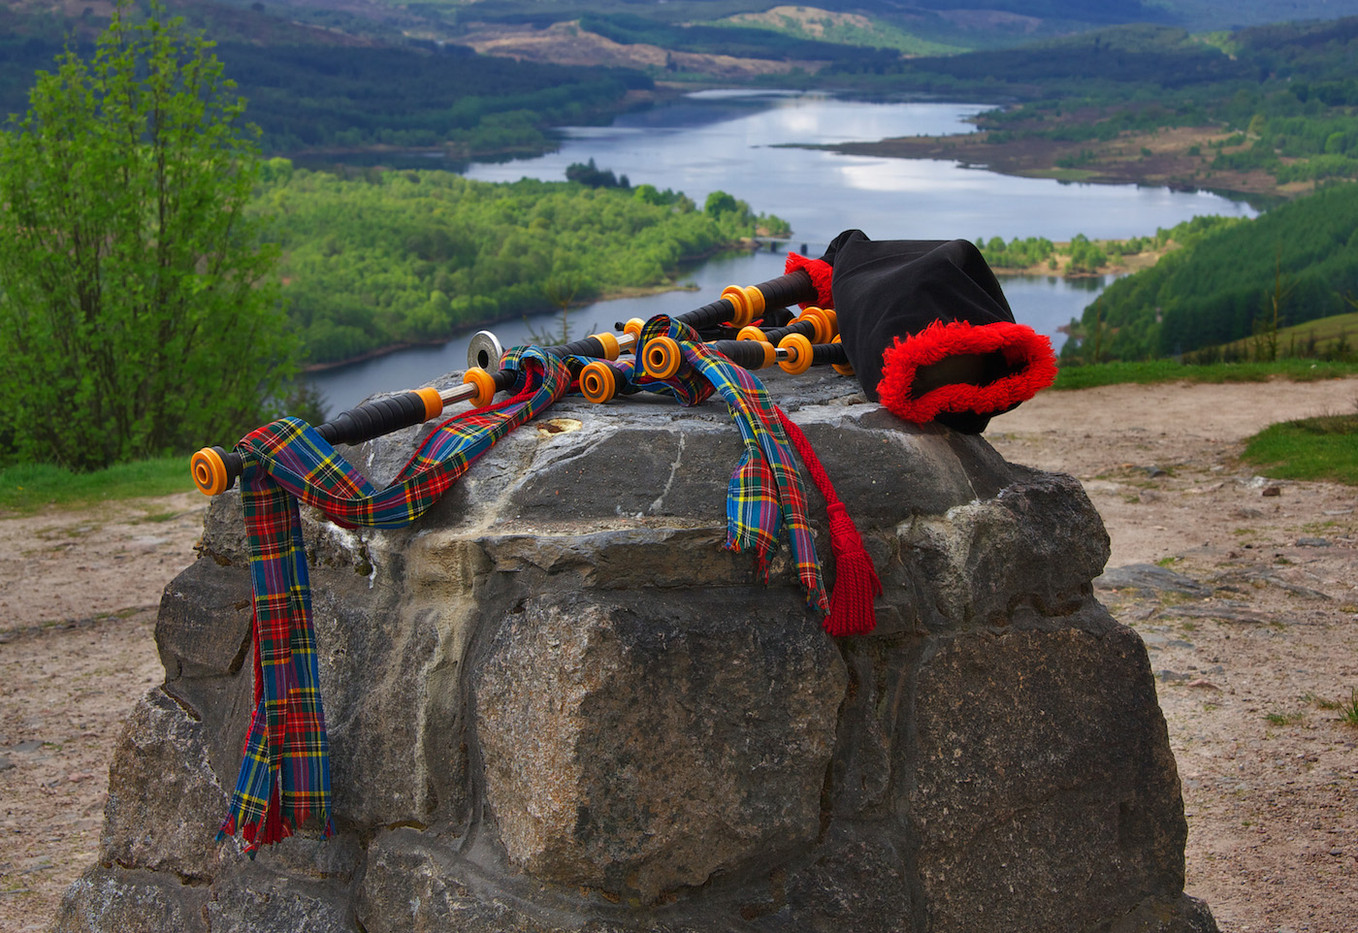 GROUP 1 16 SCOTTISH BAGPIPES by Carole Lewis